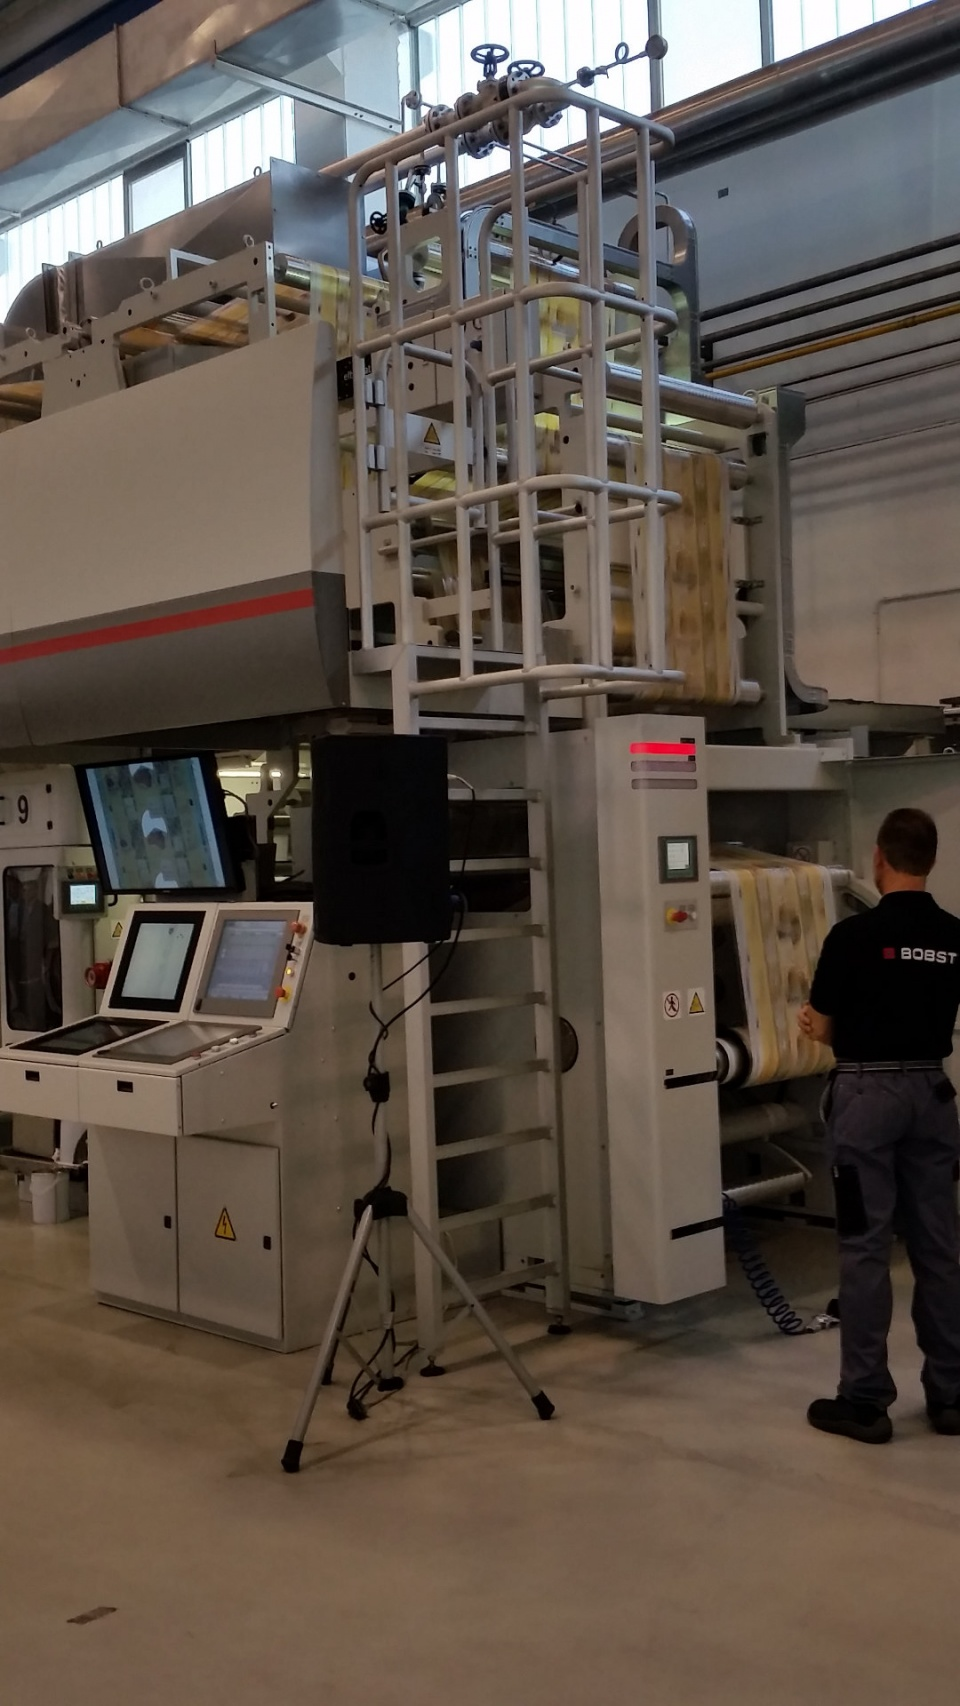 Color printing bobst - After An Automatic Splice Carried Out On The Rewinder At Maximum Speed A Print Sample Master Was Collected Before Changing The Color On One Print Unit